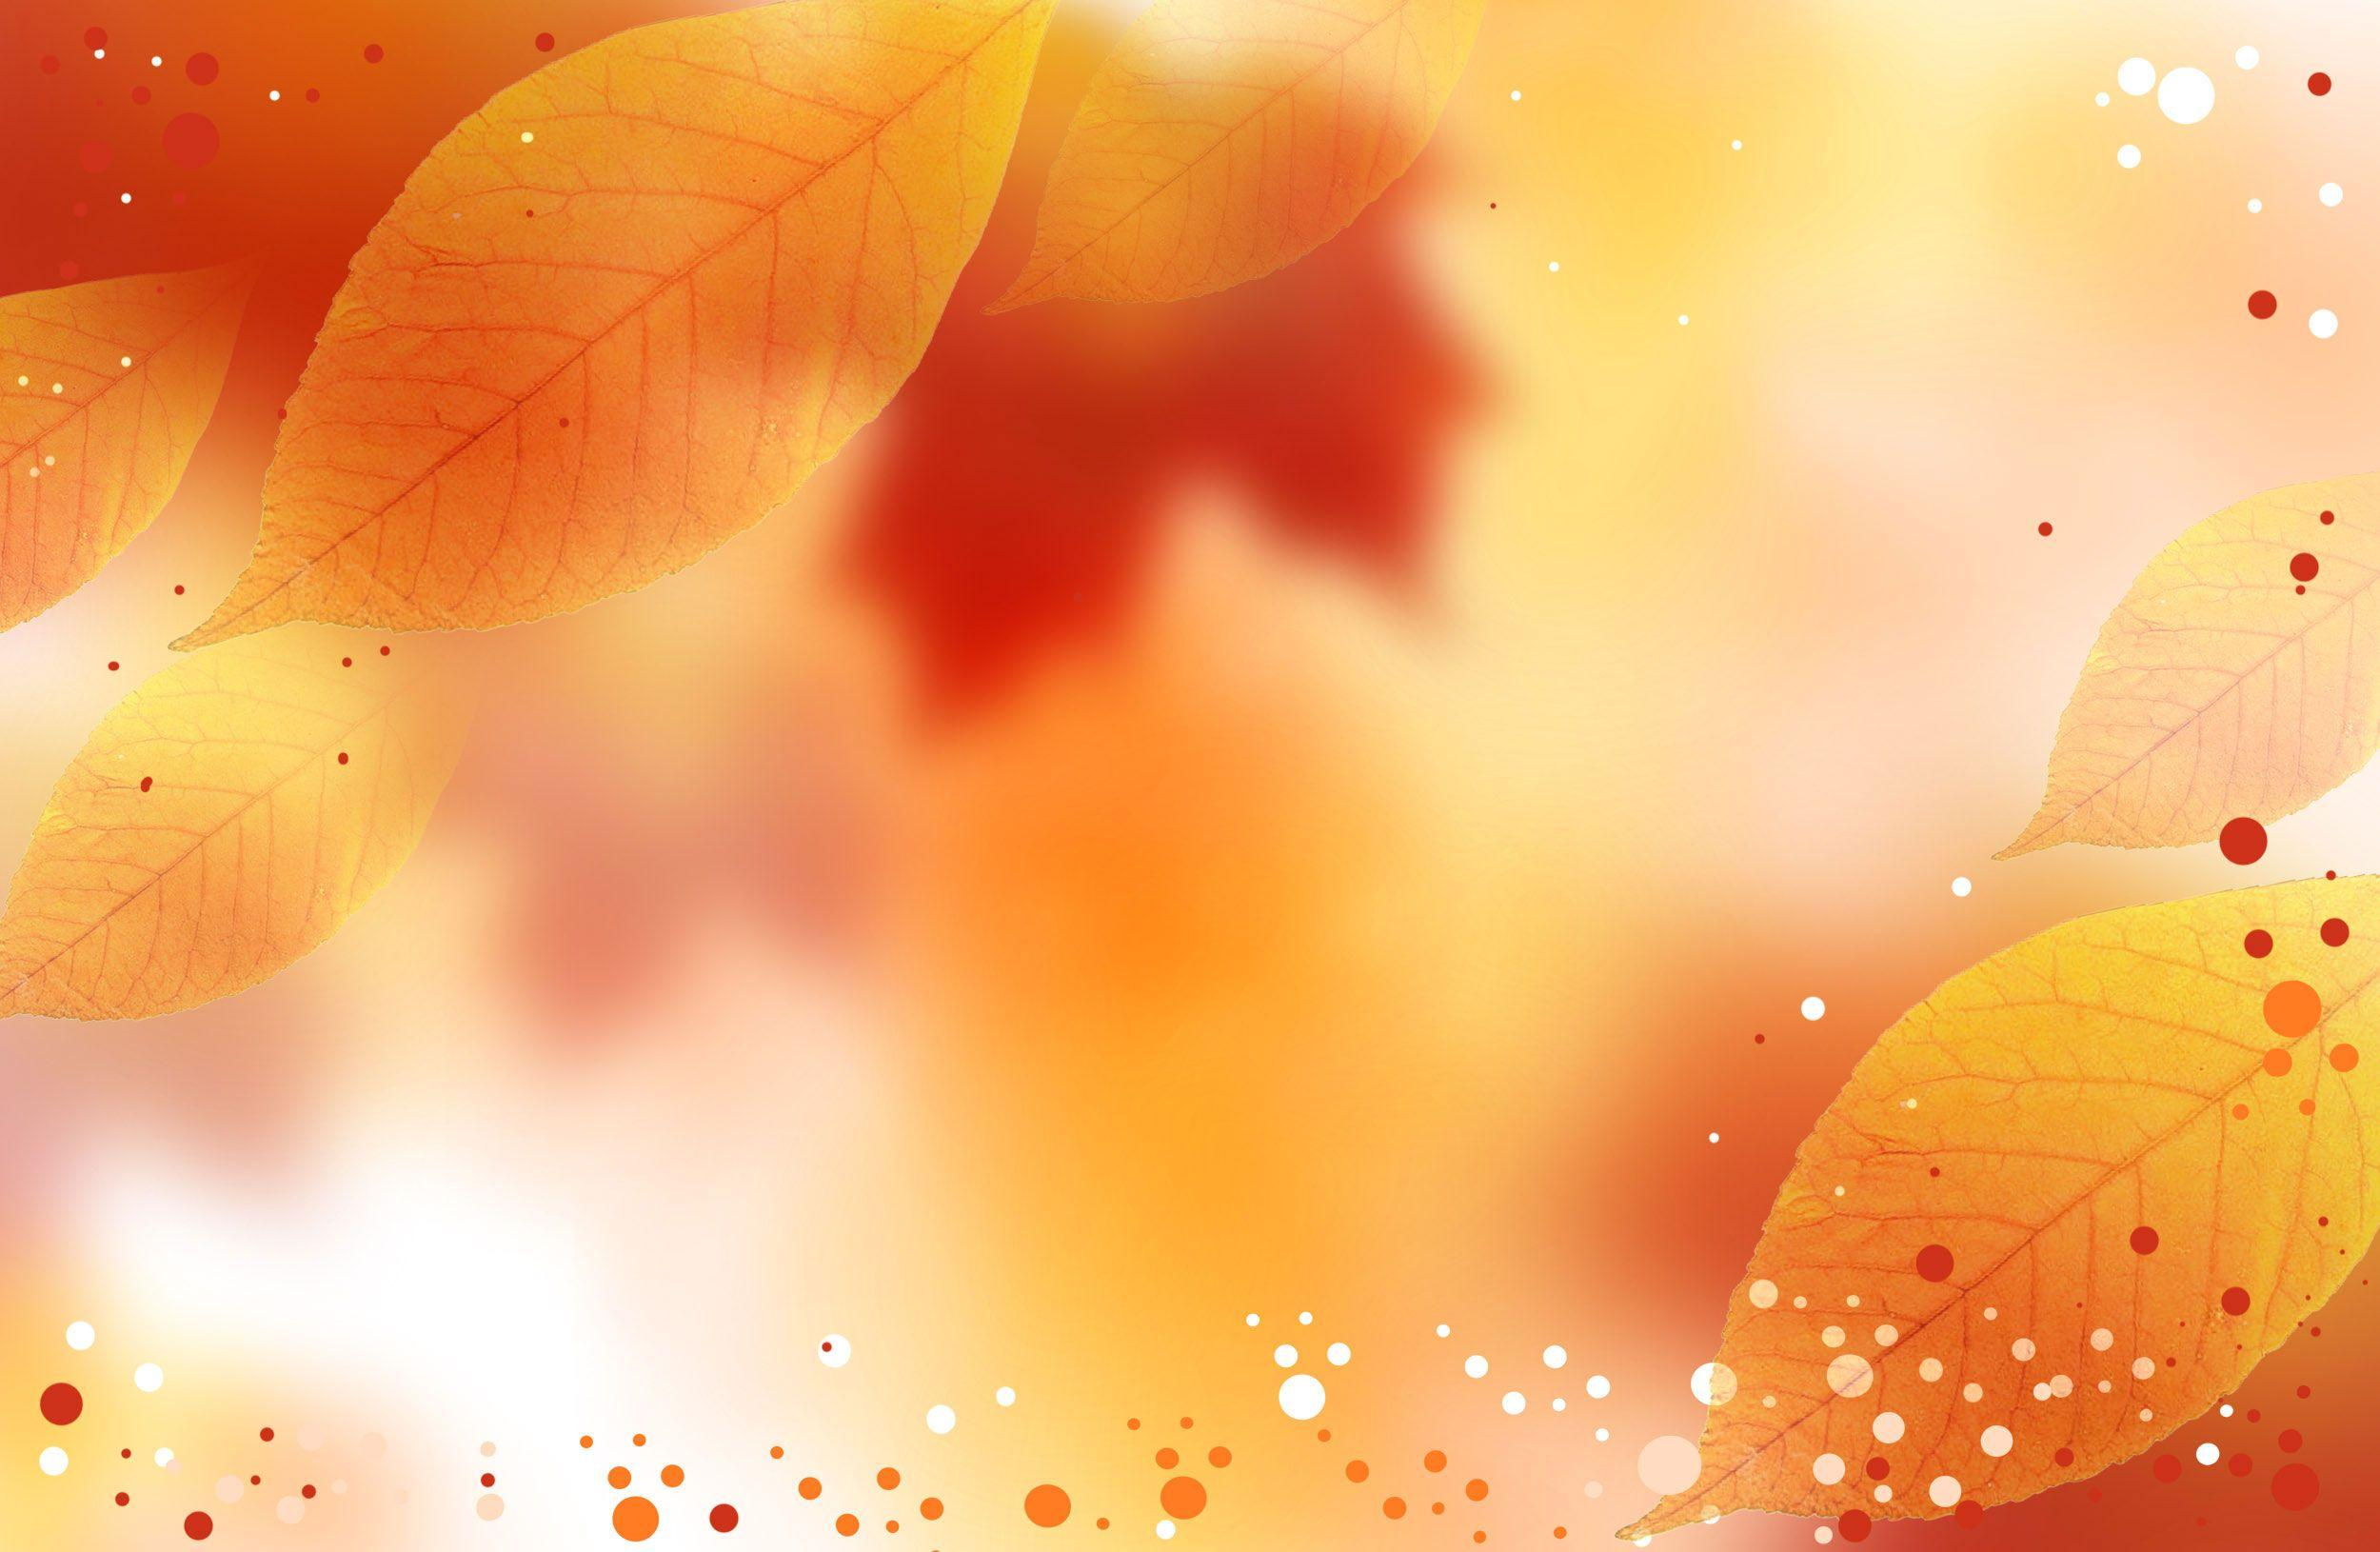 Fall Backgrounds Wallpapers - Wallpaper Cave